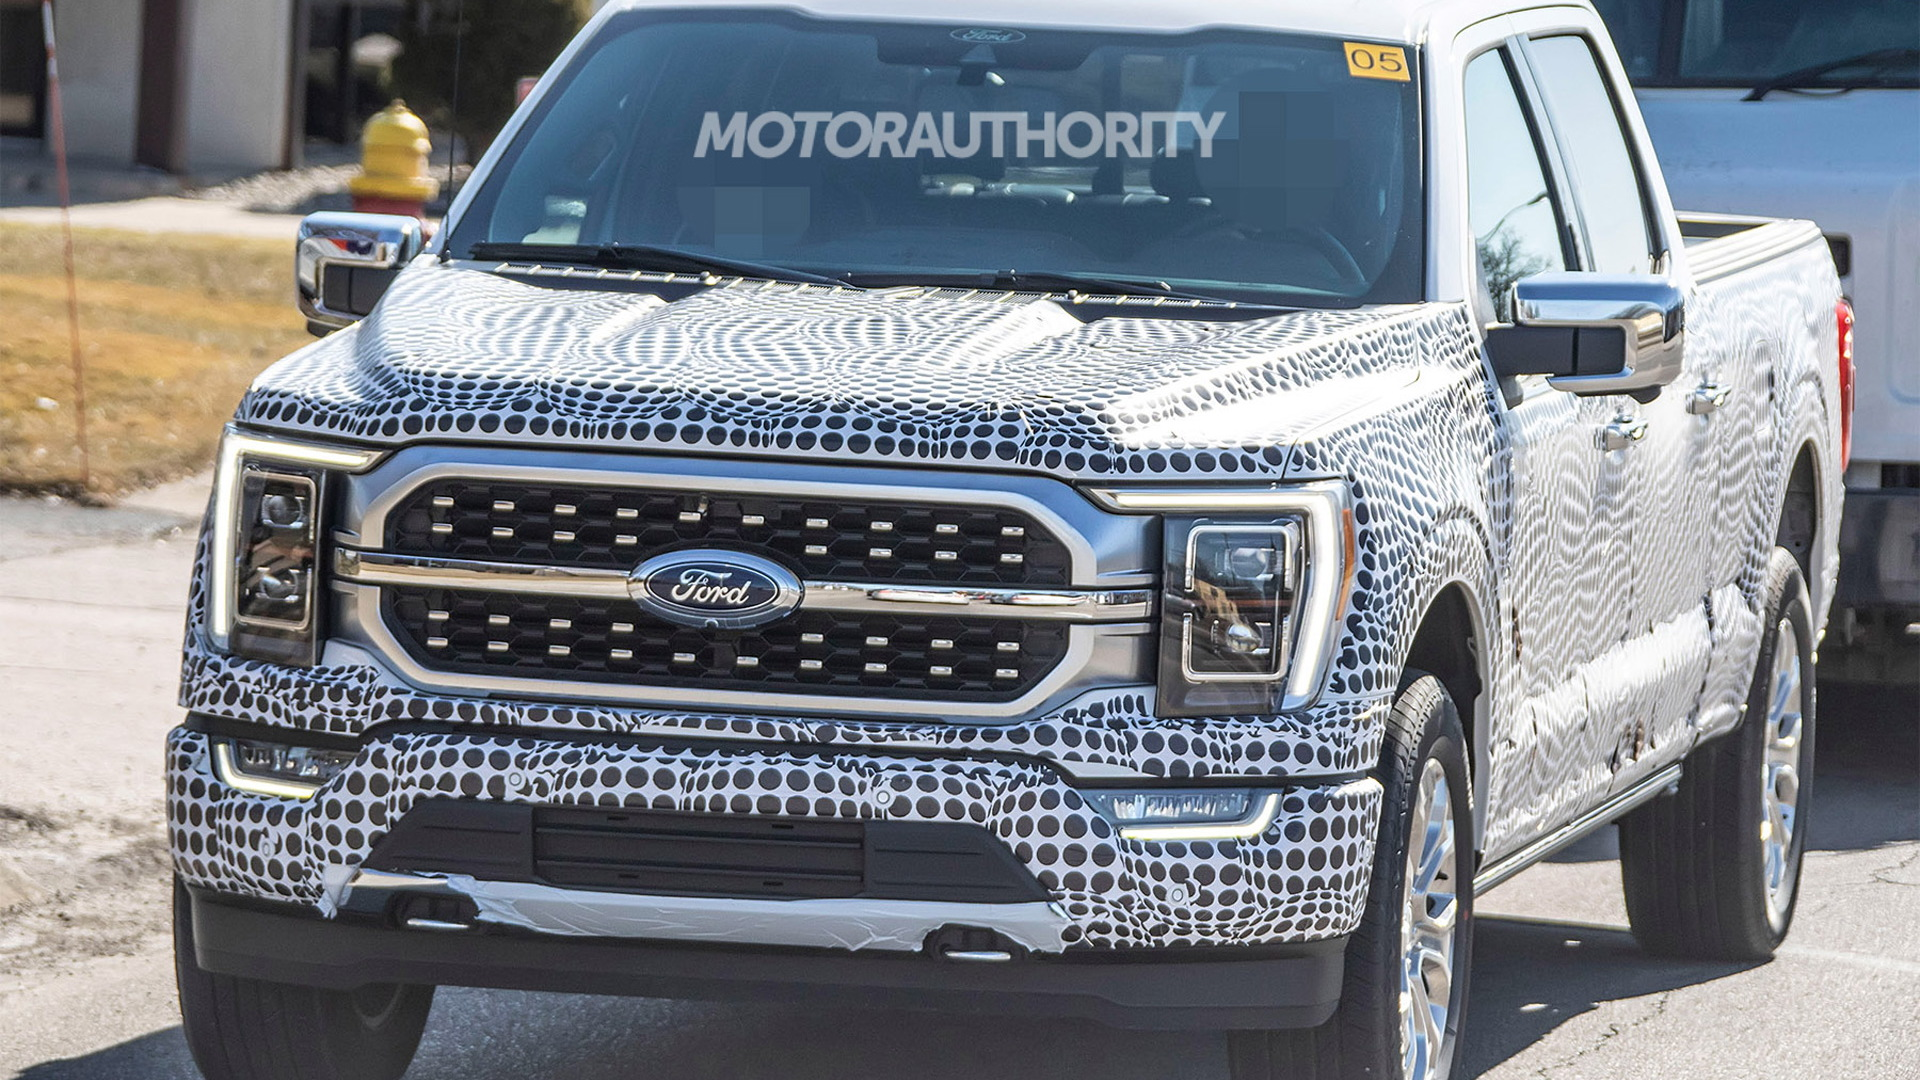 2021 Ford F-150 spy shots - Photo credit: S. Baldauf/SB-Medien